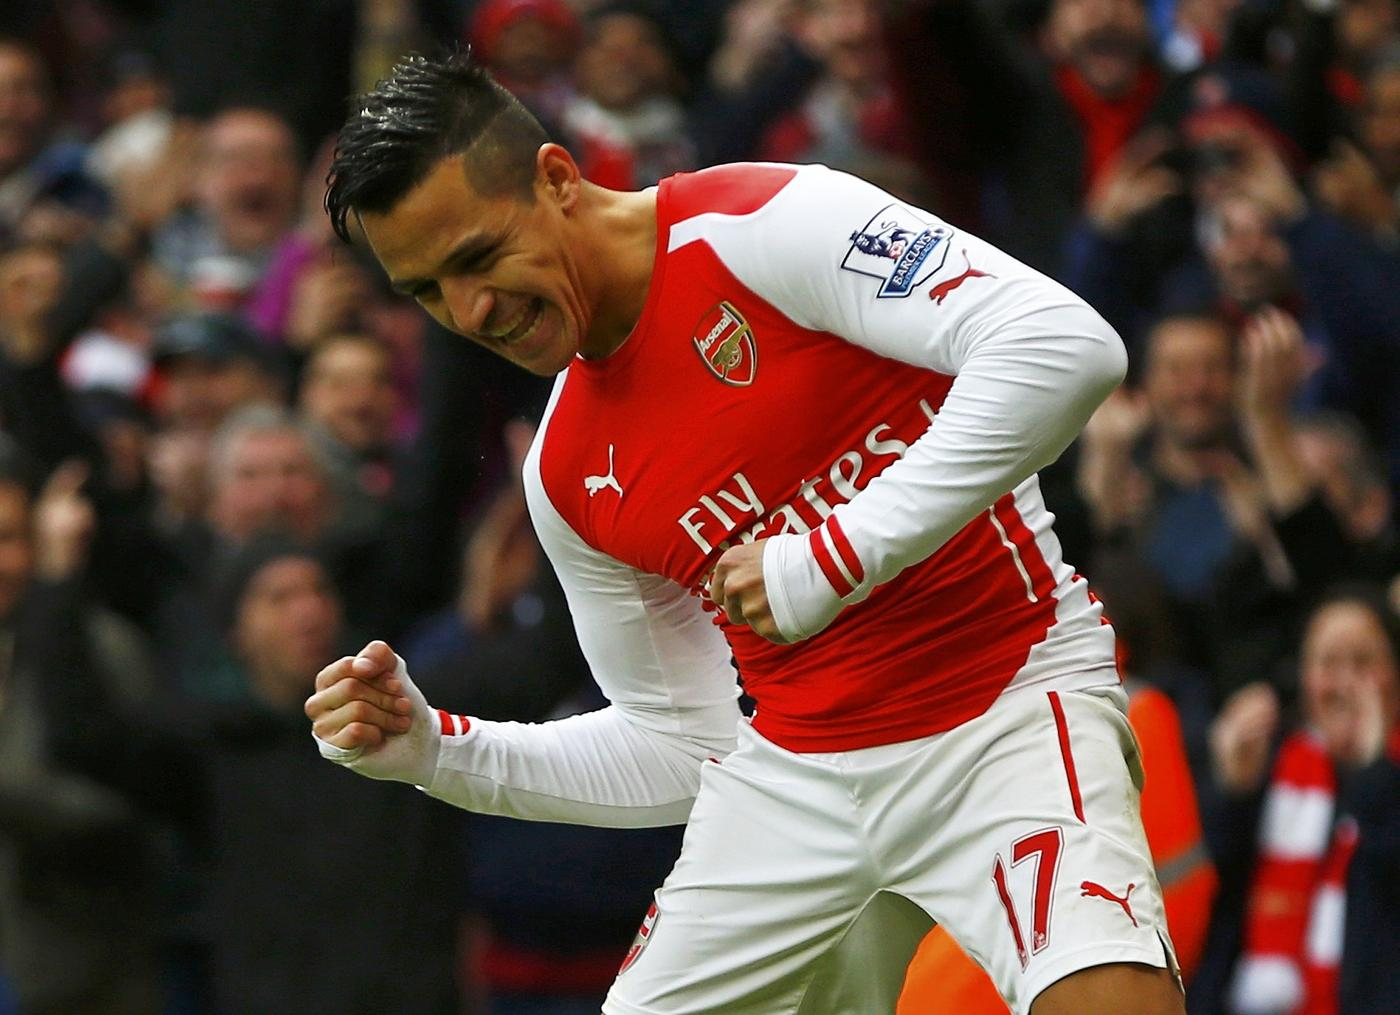 Alexis Sanchez demolishes Stoke, stats show just how ridiculously good he's been for Arsenal this season